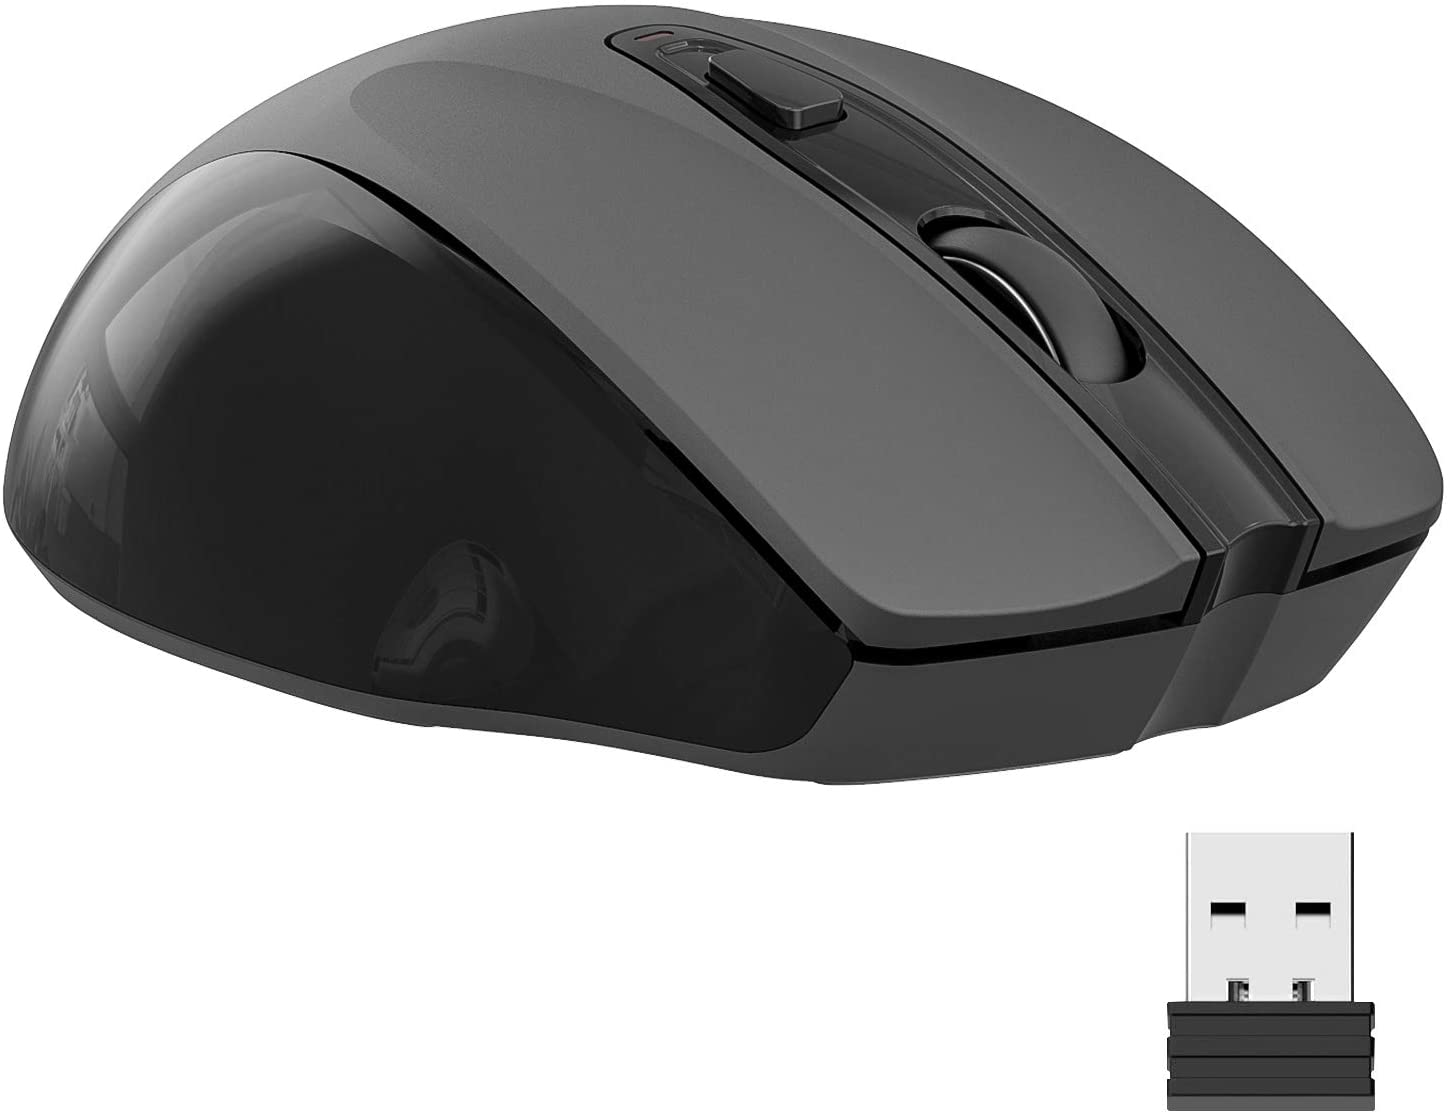 Wireless Mouse, 2.4G Slim Silent Travel Cordless Mouse Optical Mice with USB Receiver for Laptop Computer PC MacBook Chromebook and Notebook (Black)